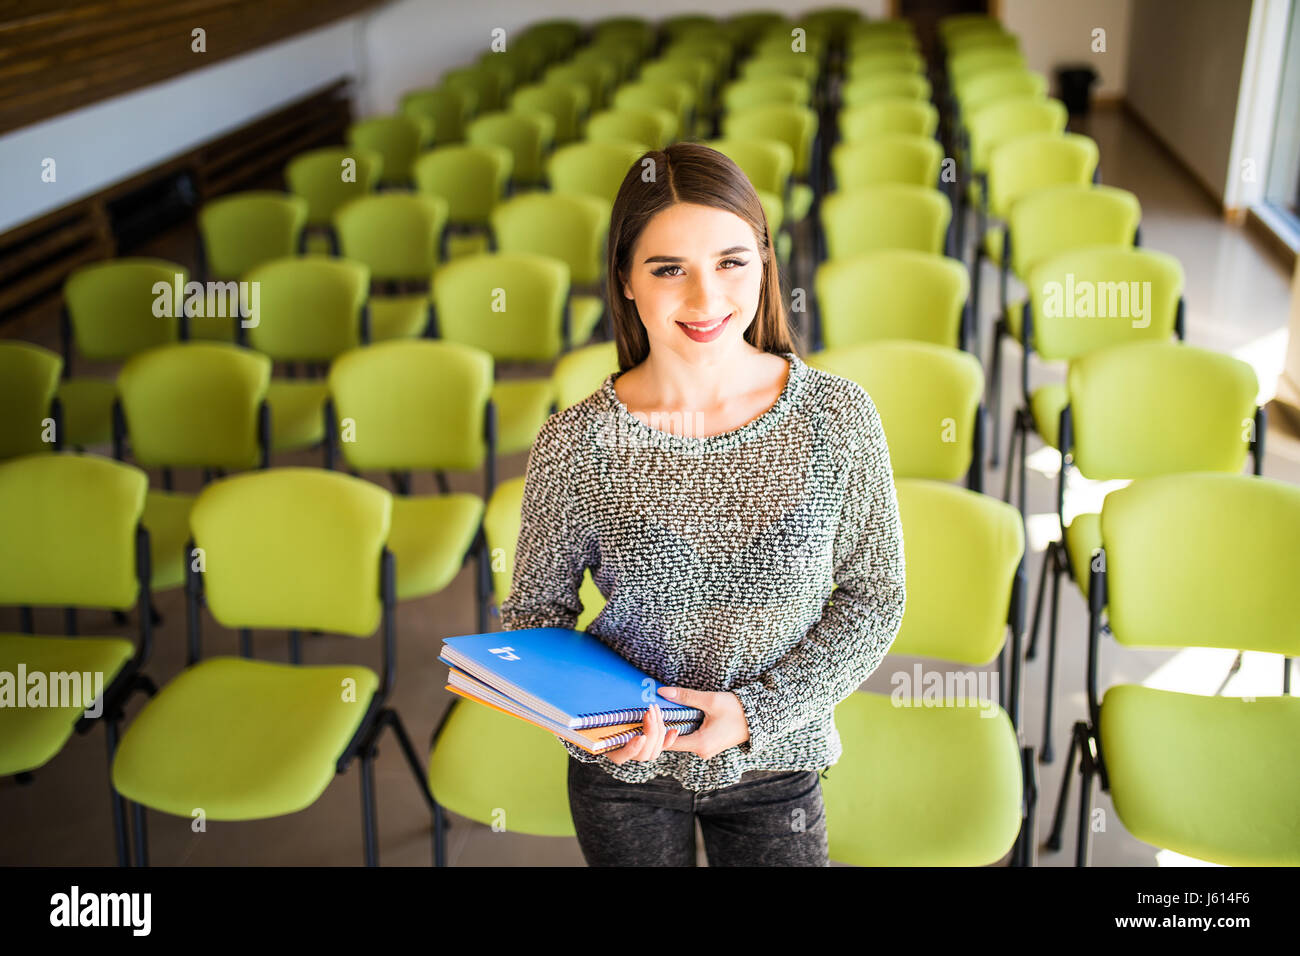 A beautiful business woman sitting alone in an auditorium - Stock Image